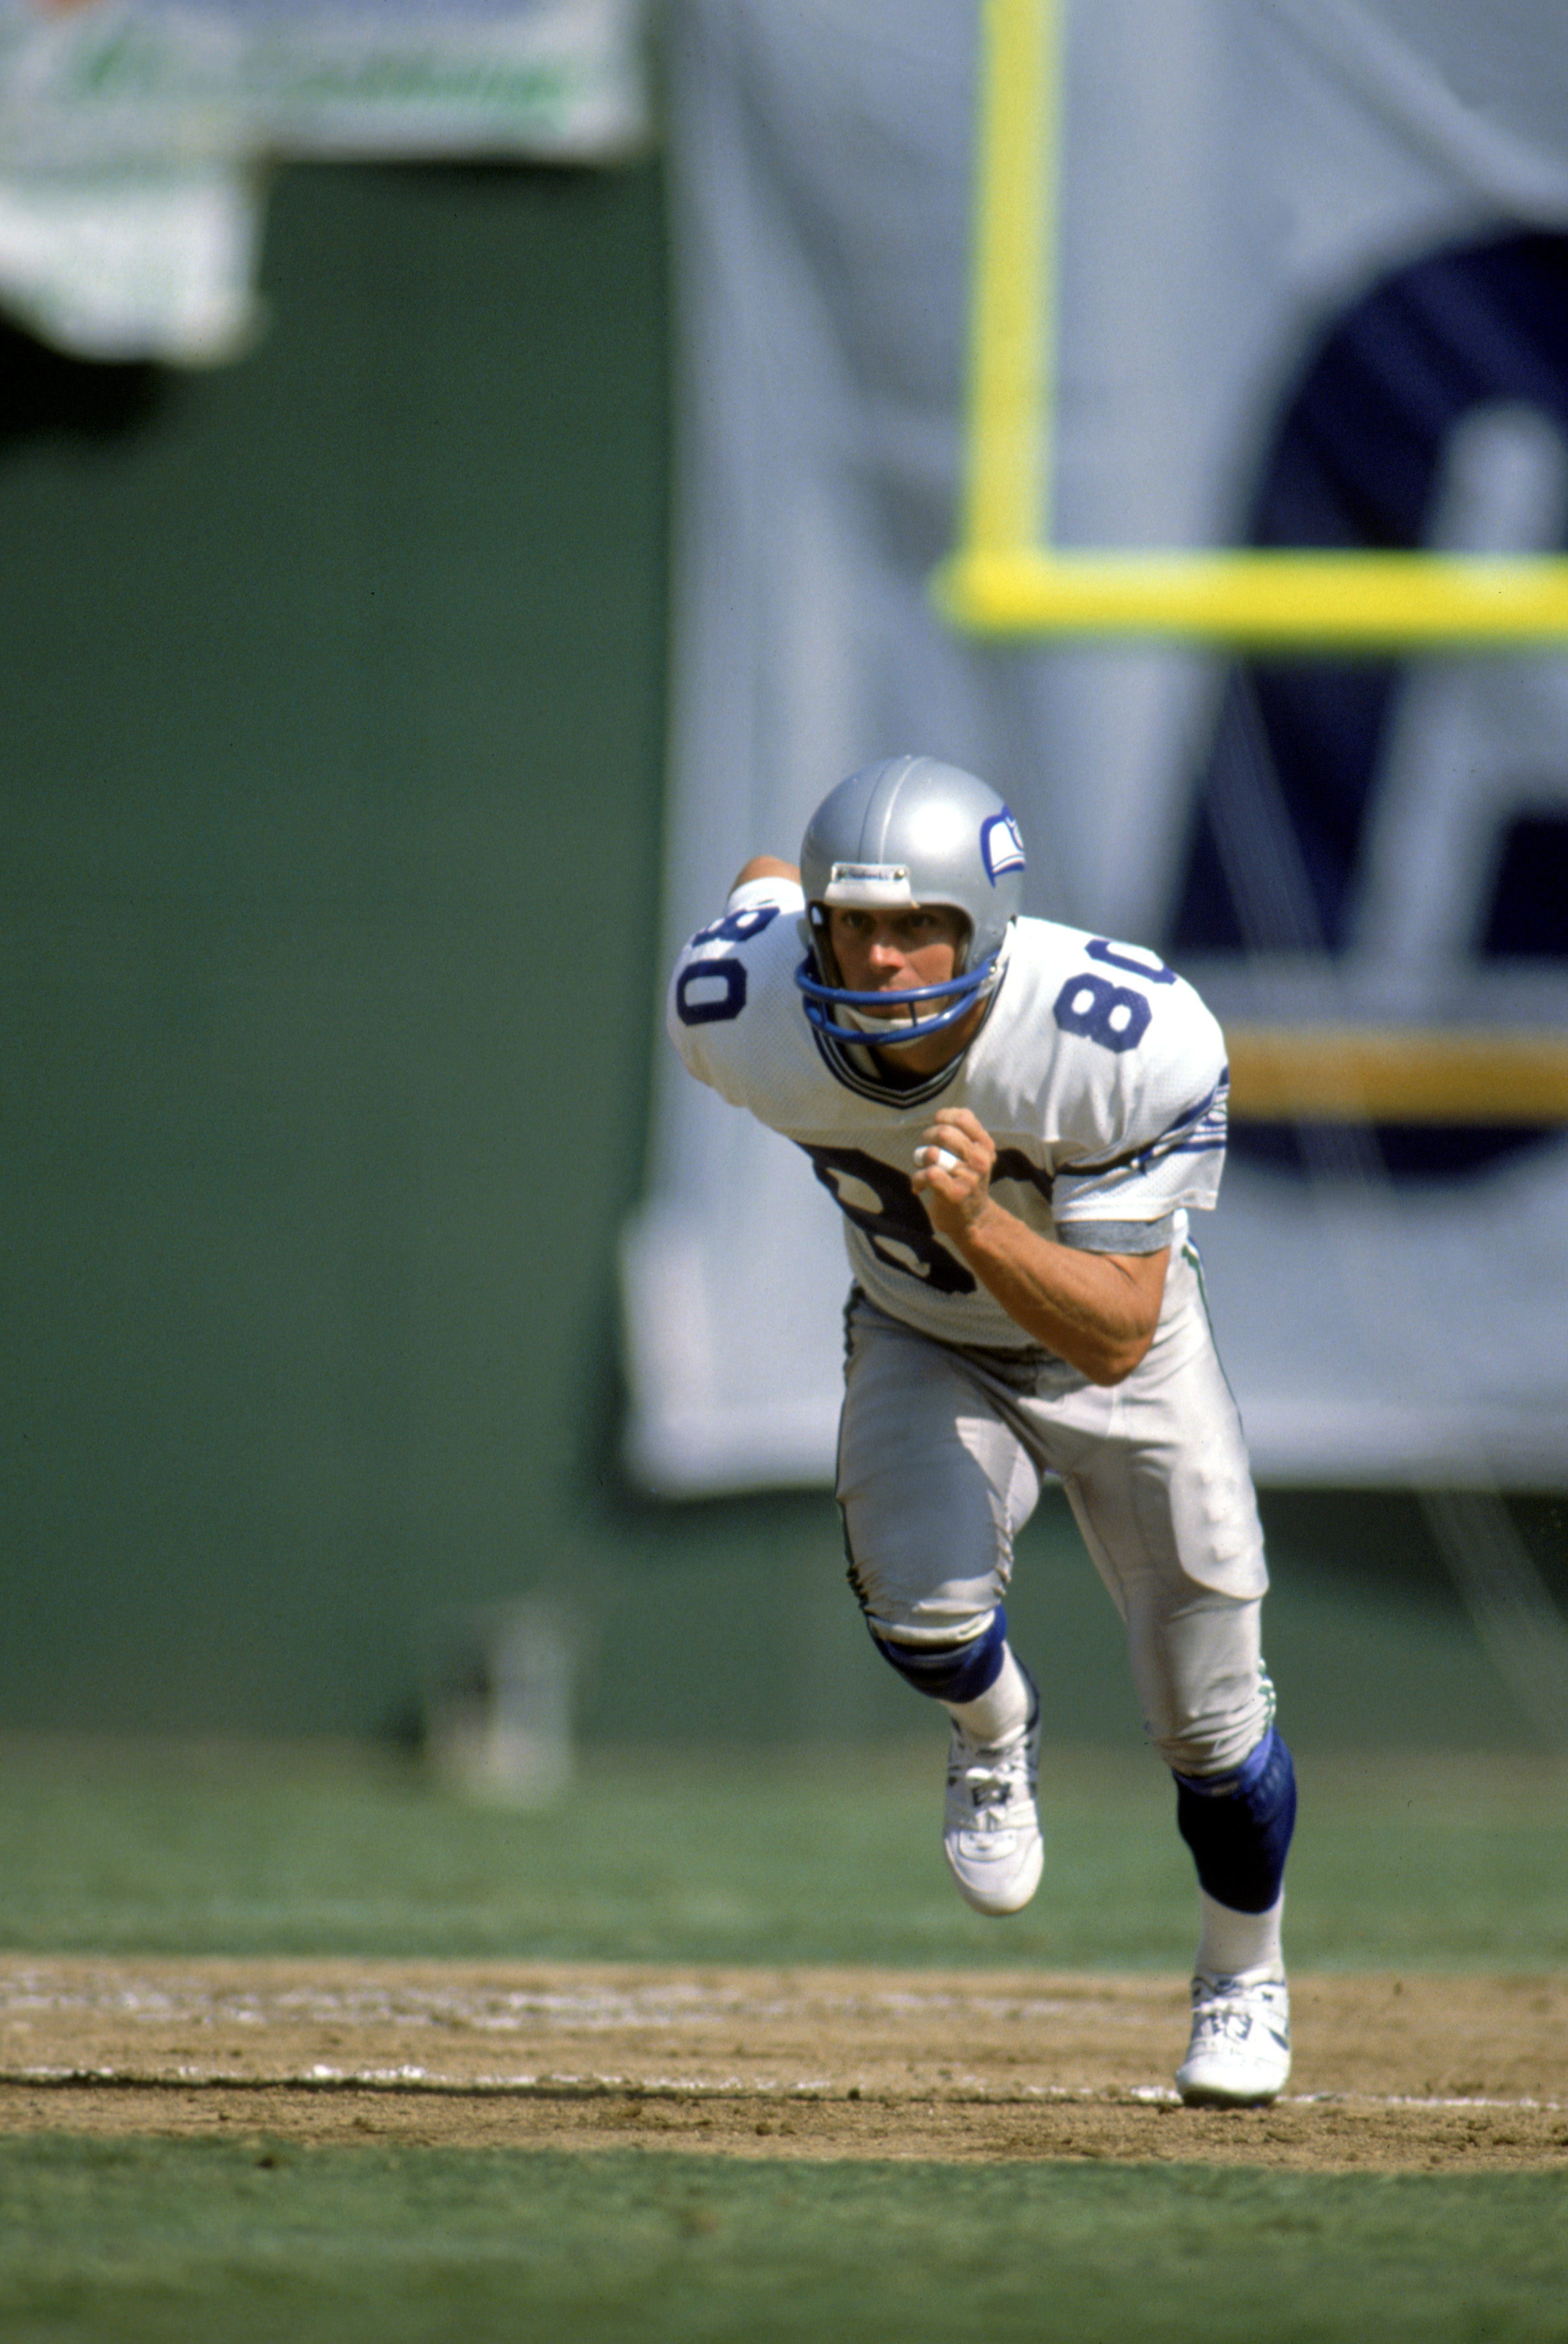 SEATTLE - SEPTEMBER 18:  Wide receiver Steve Largent #80 of the Seattle Seahawks runs a pattern during a game against the San Diego Chargers at The Kingdome during the 1988 NFL season in Seattle, Washington.  The Chargers defeated the Seahawks 17-6.  (Pho